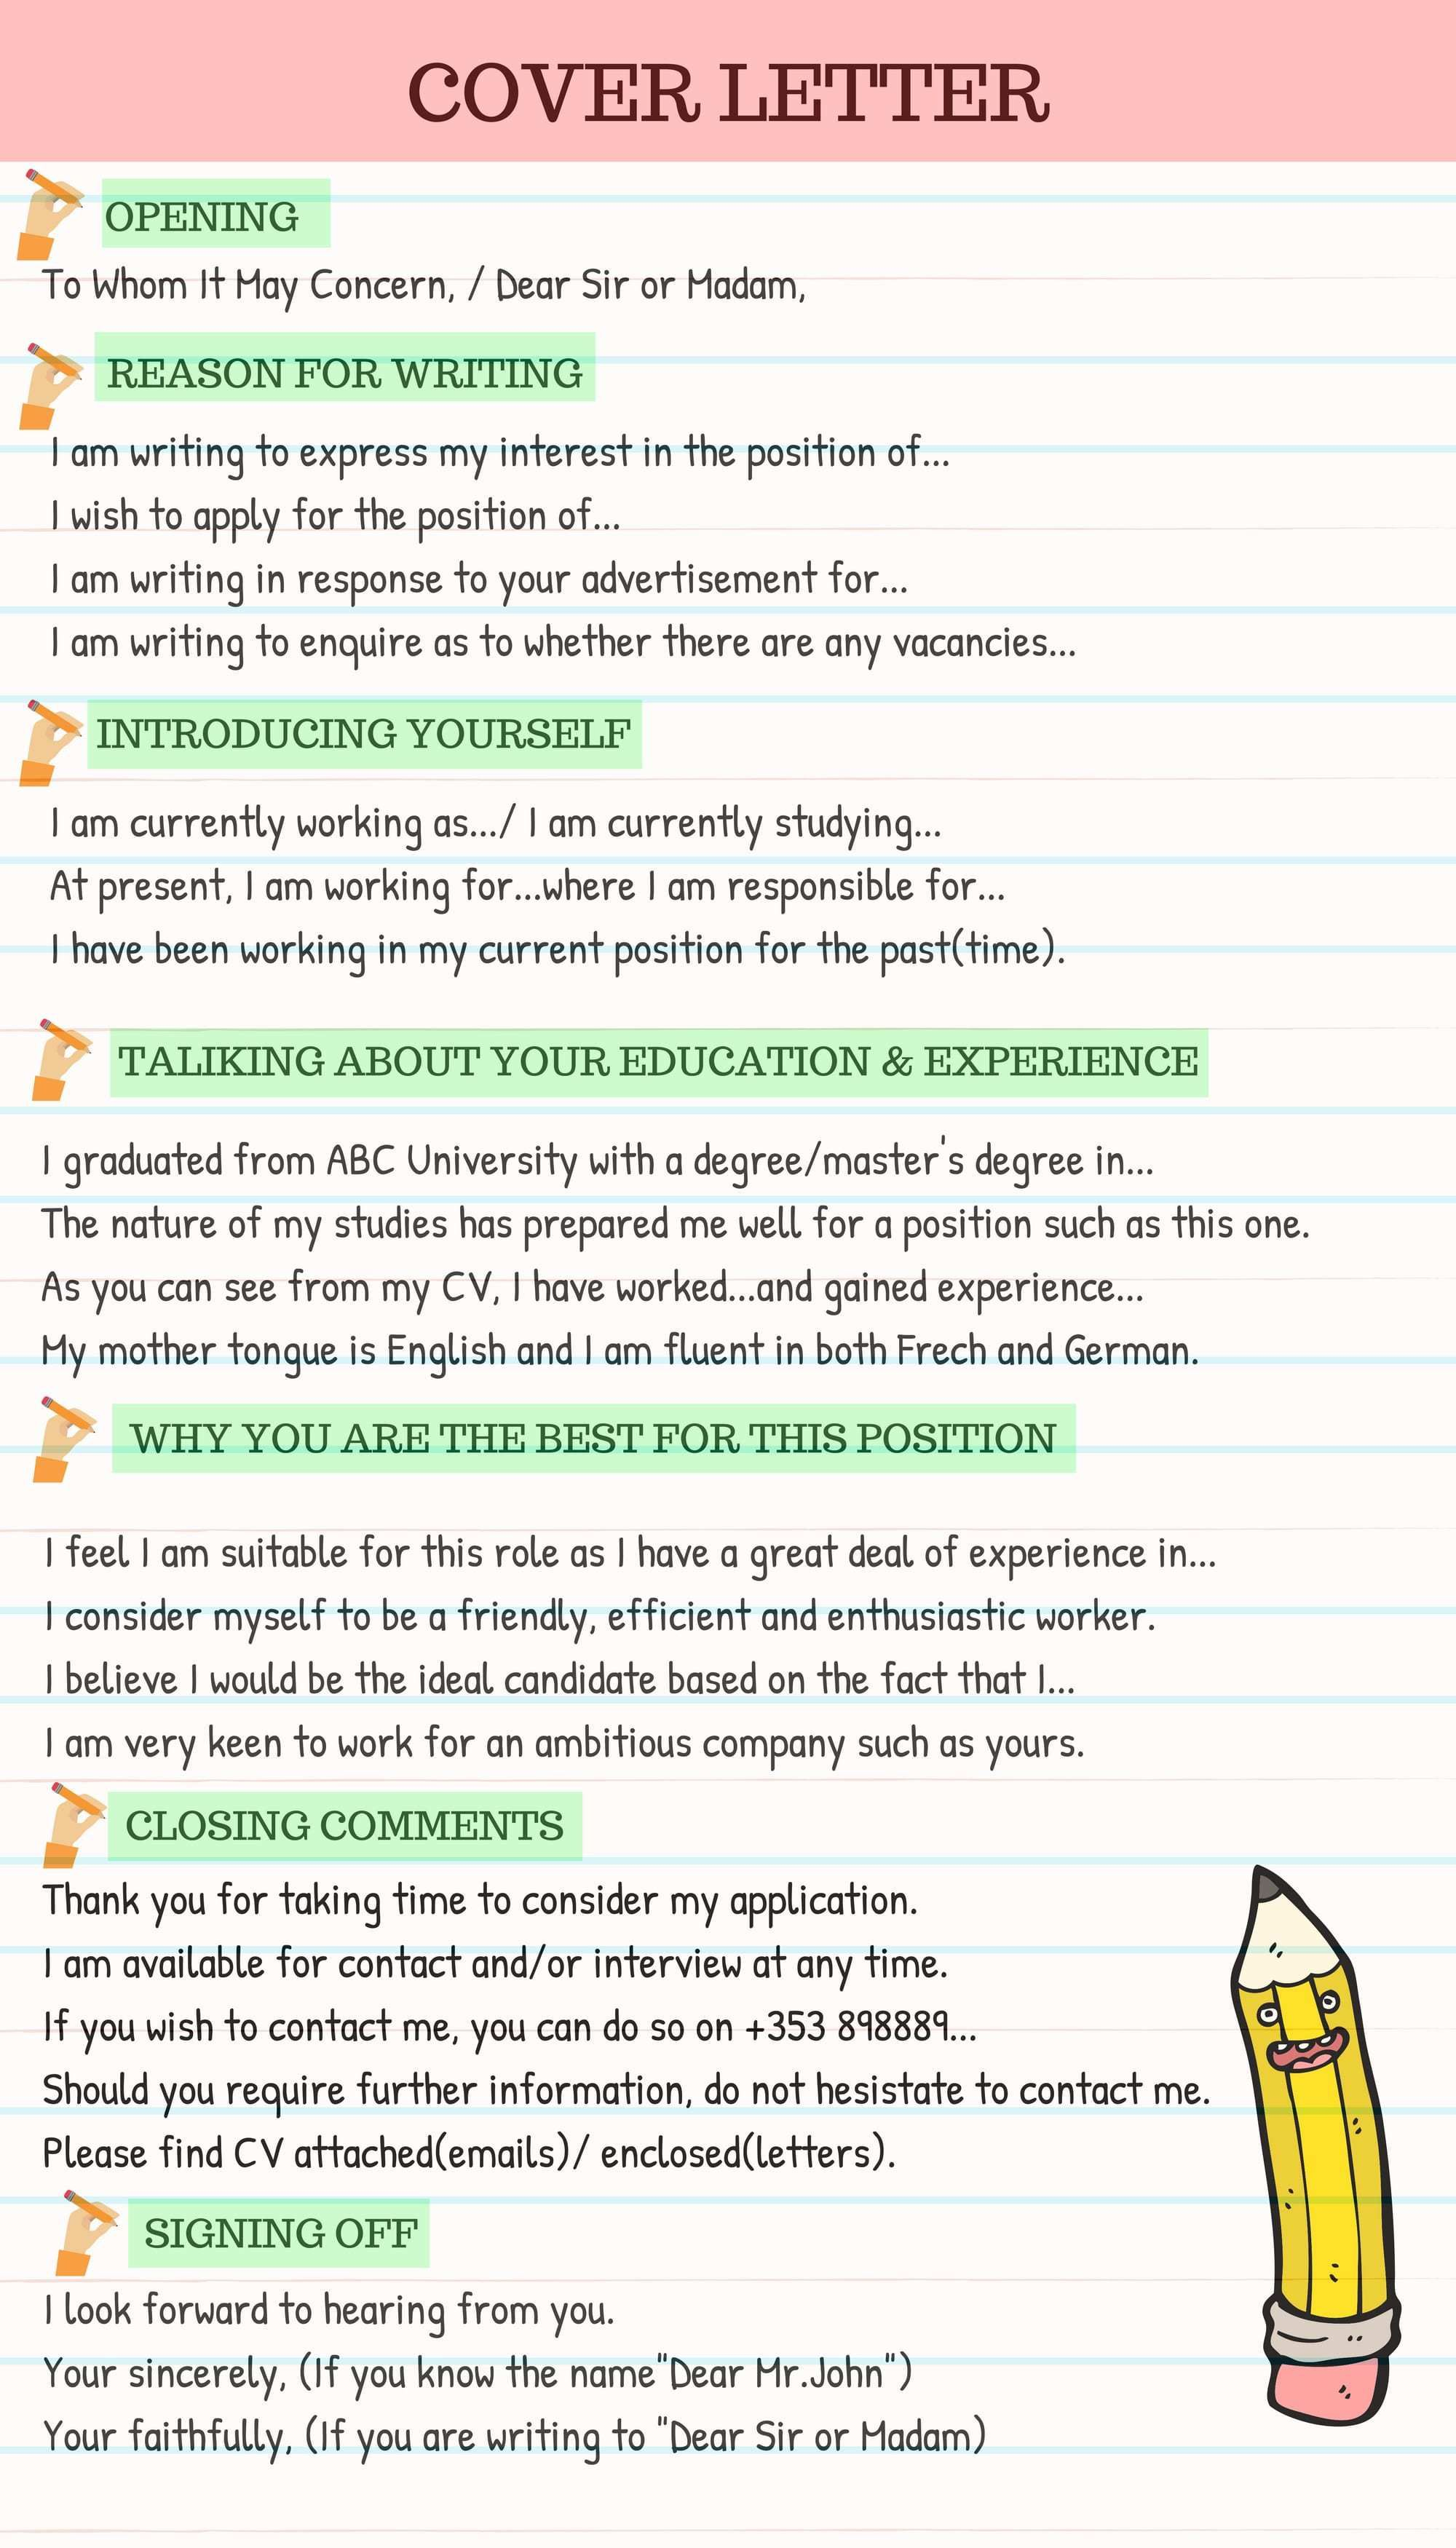 How to Write a Cover Letter Effectively! - ESLBuzz Learning English